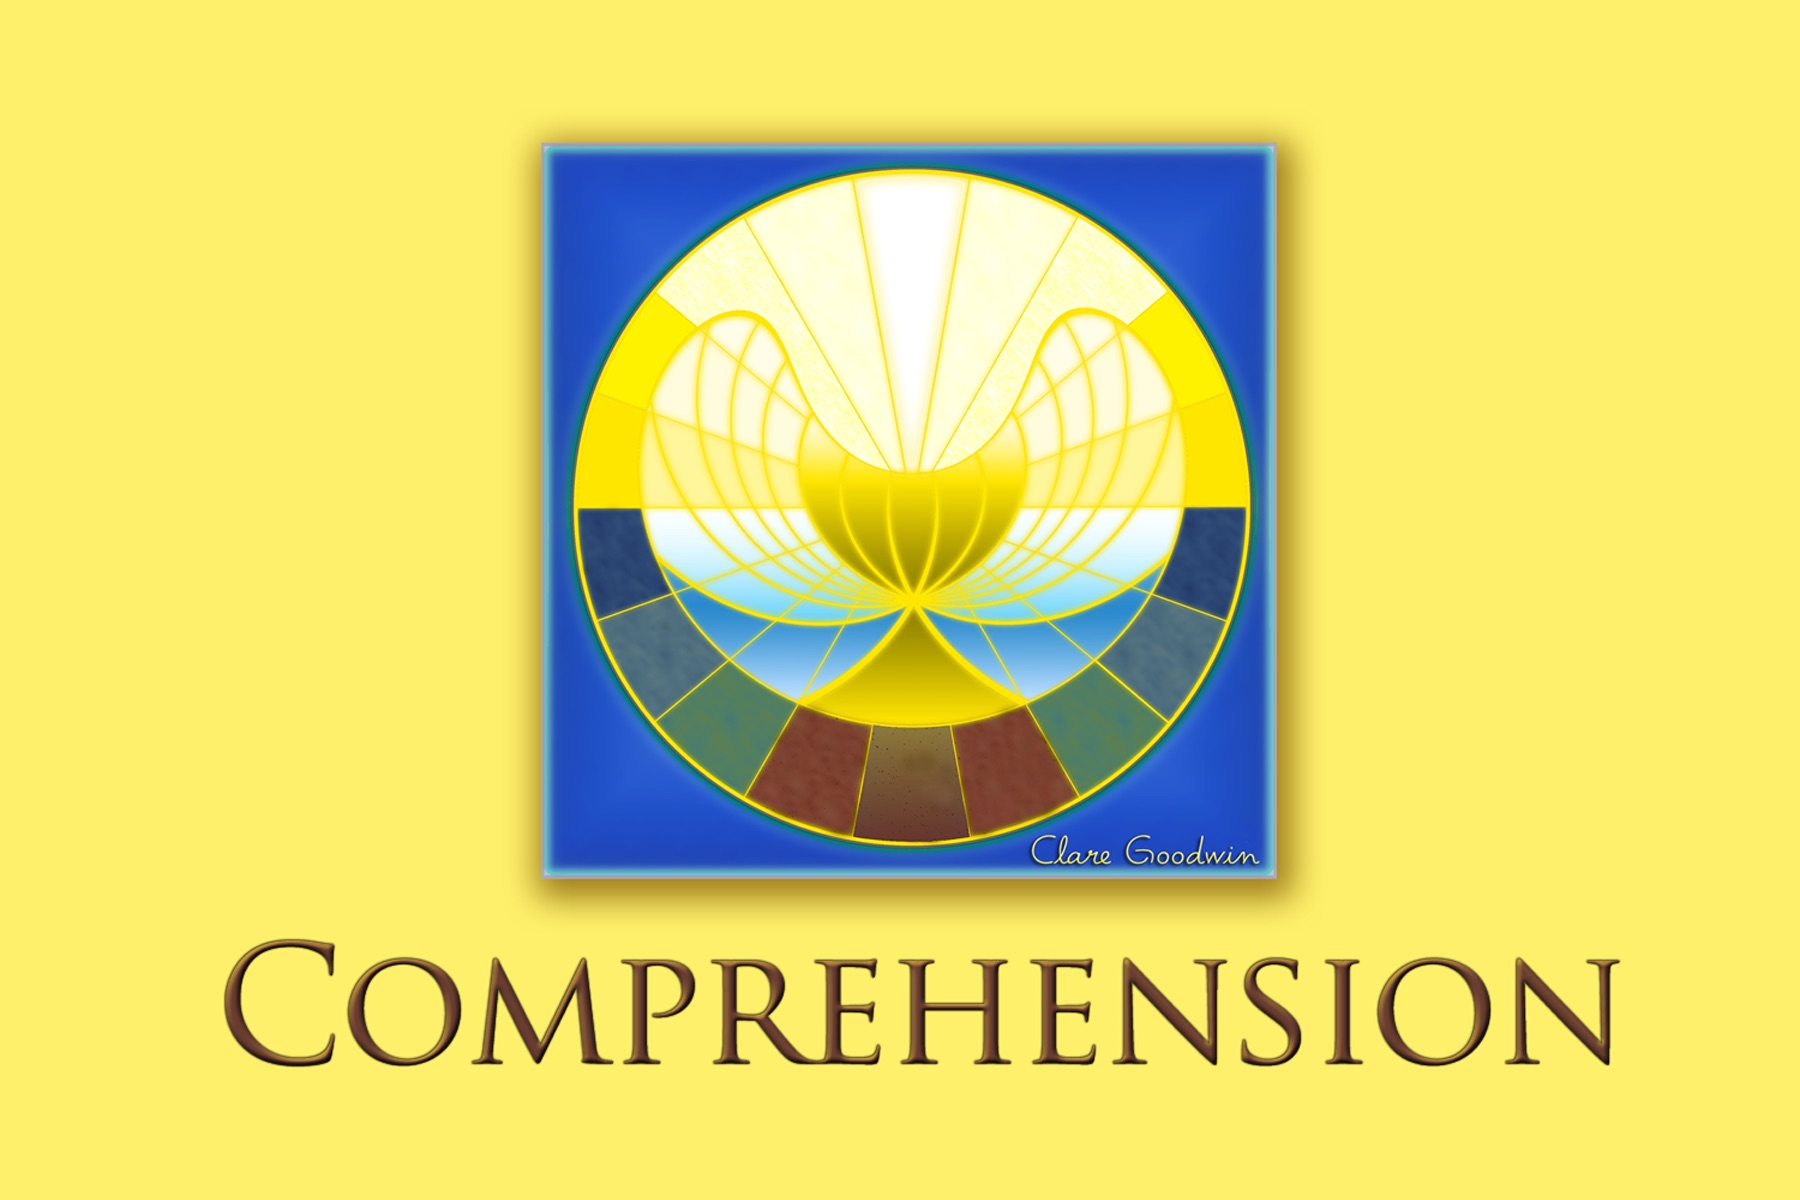 psychosynthesis training program san francisco Captivate training class in downtown san francisco by adobe authorized training center free retake policy conveniently located close to bart.